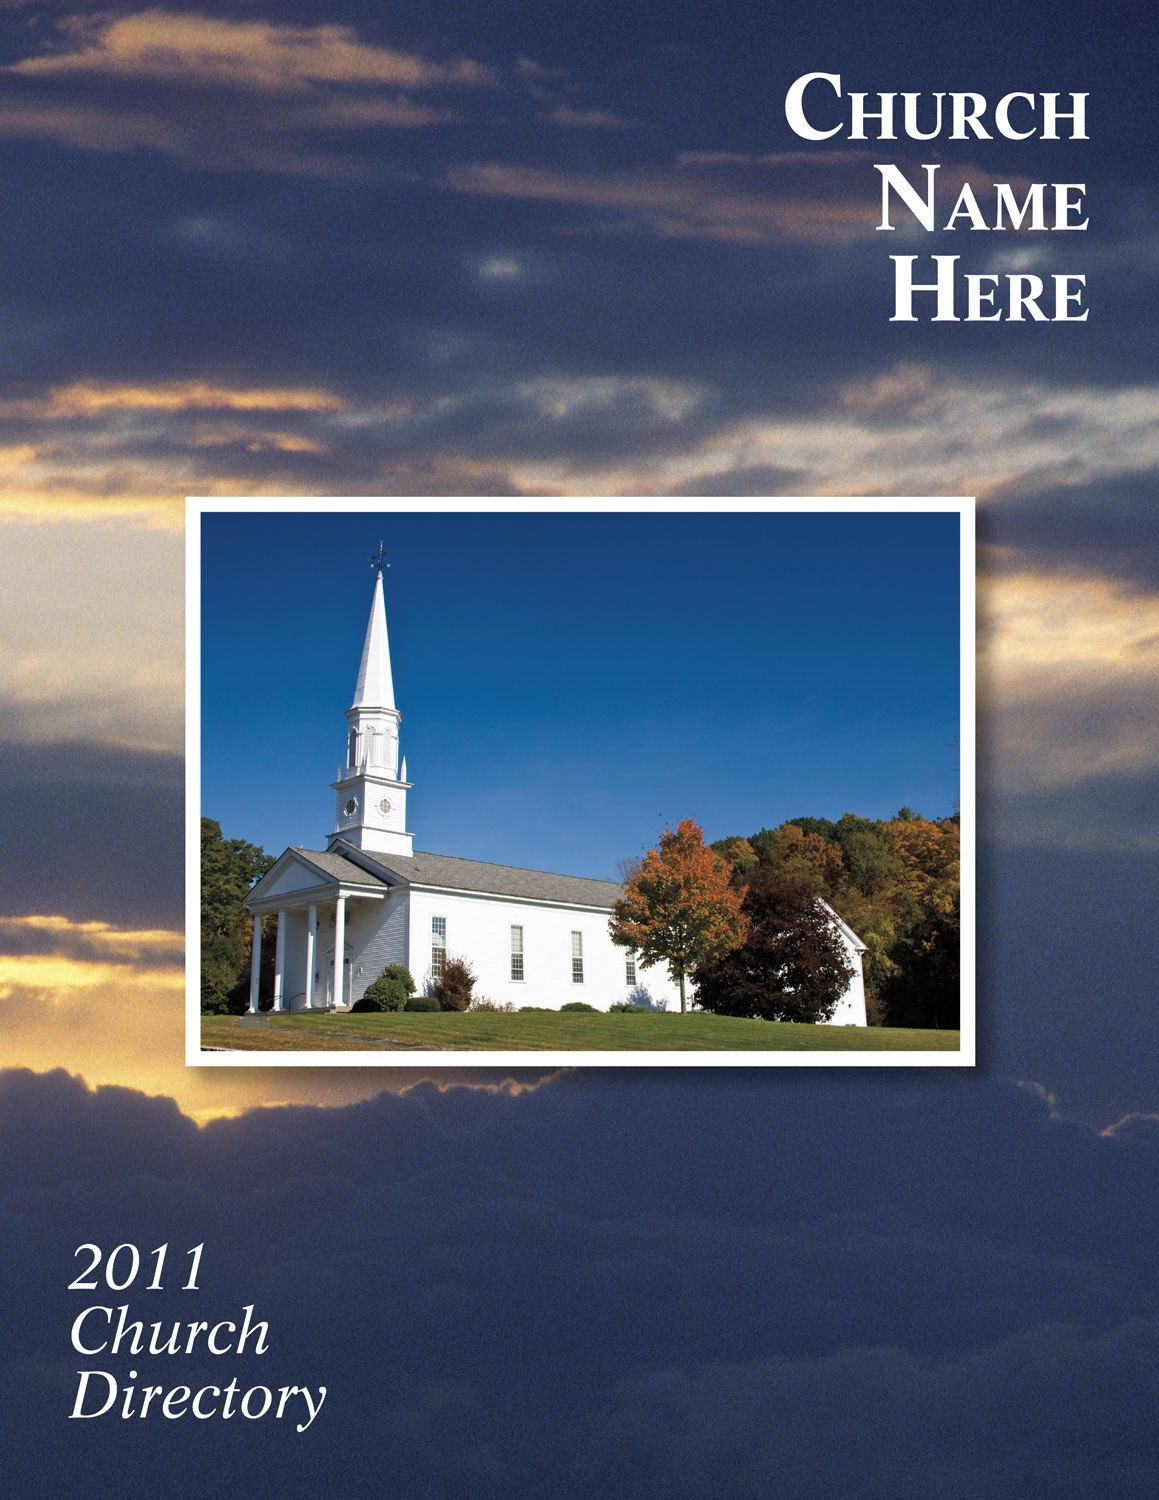 Church directories directory for churches church for Free church photo directory template